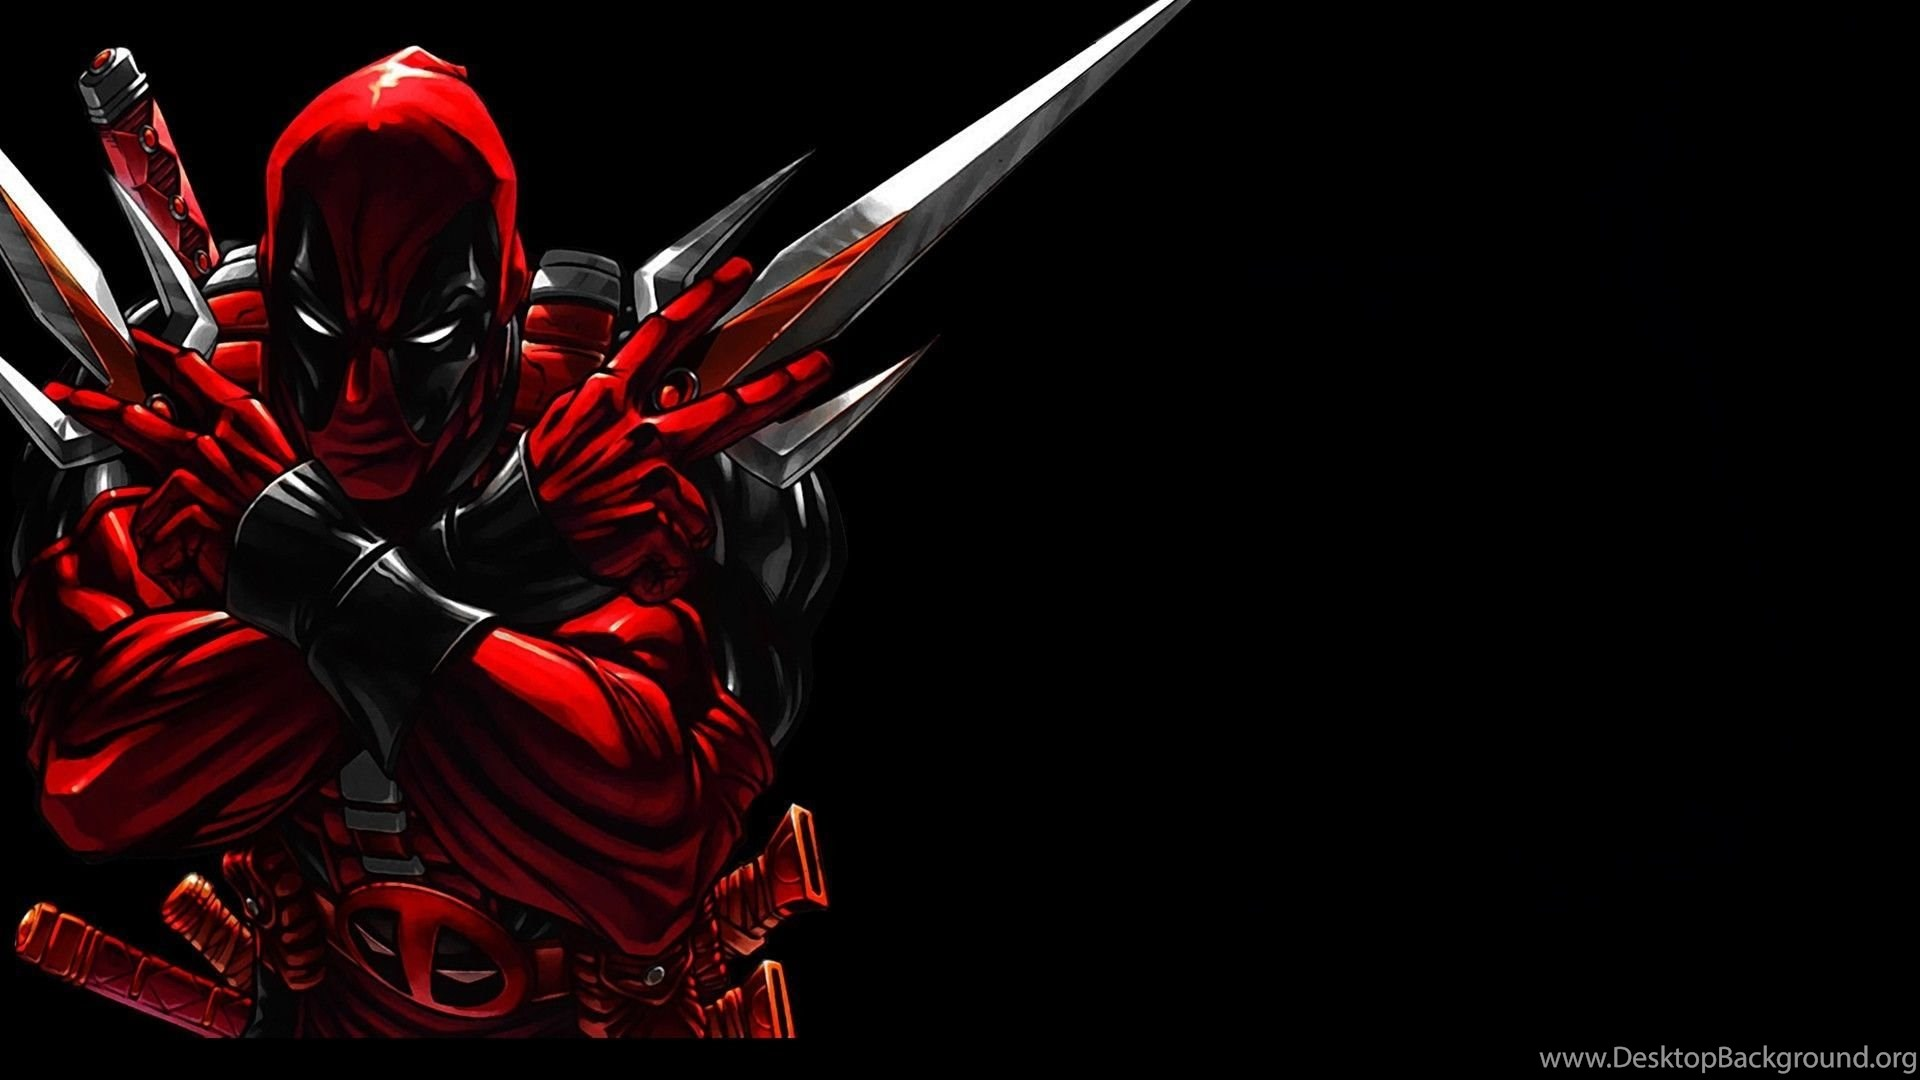 Deadpool wallpapers hd desktop background for Deadpool wallpaper 1920x1080